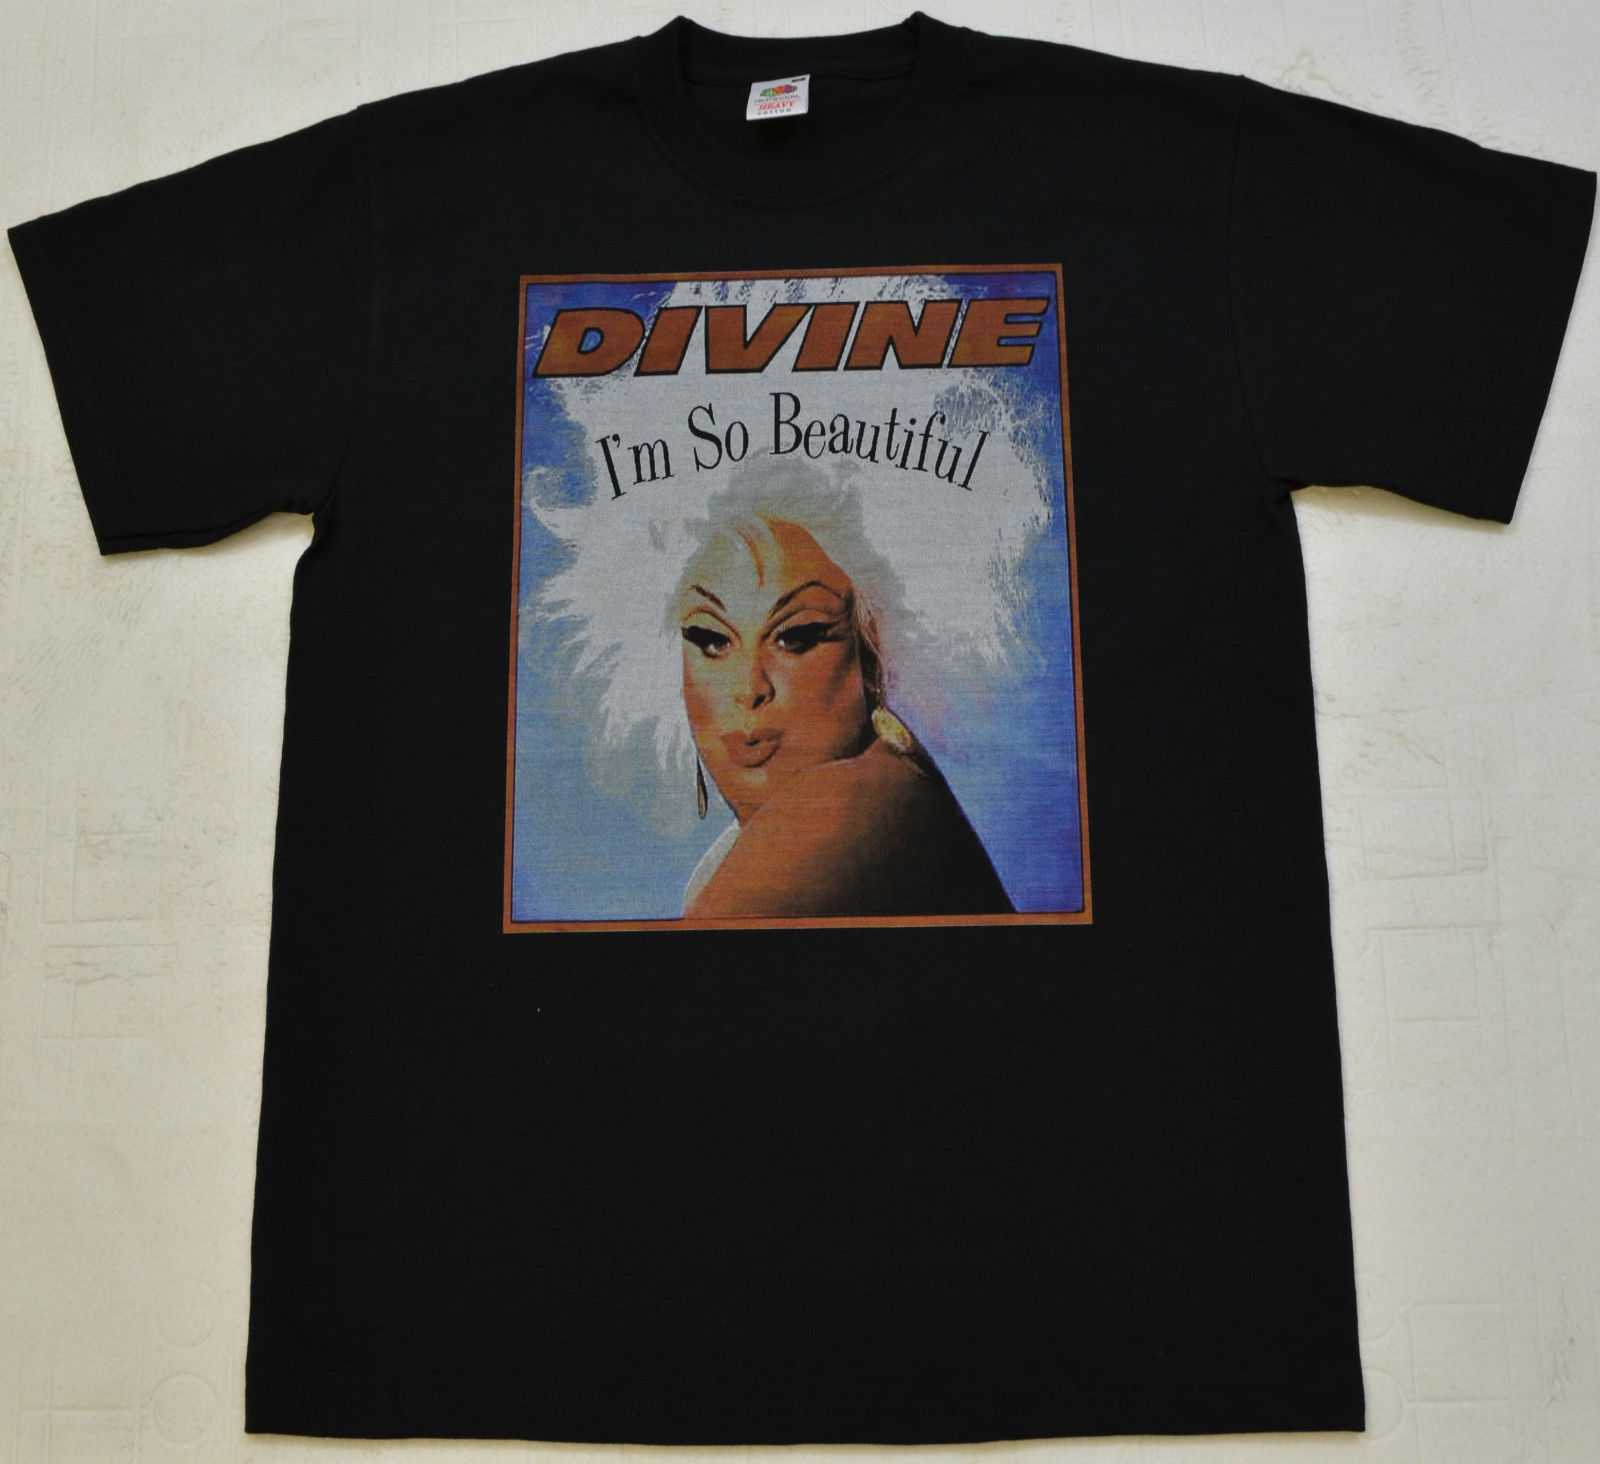 Gildan MENS BLACK T SHIRT DIVINE DRAG IM SO BEAUTIFUL PRINT JOHN WALTERS CULT S - 5XL ...